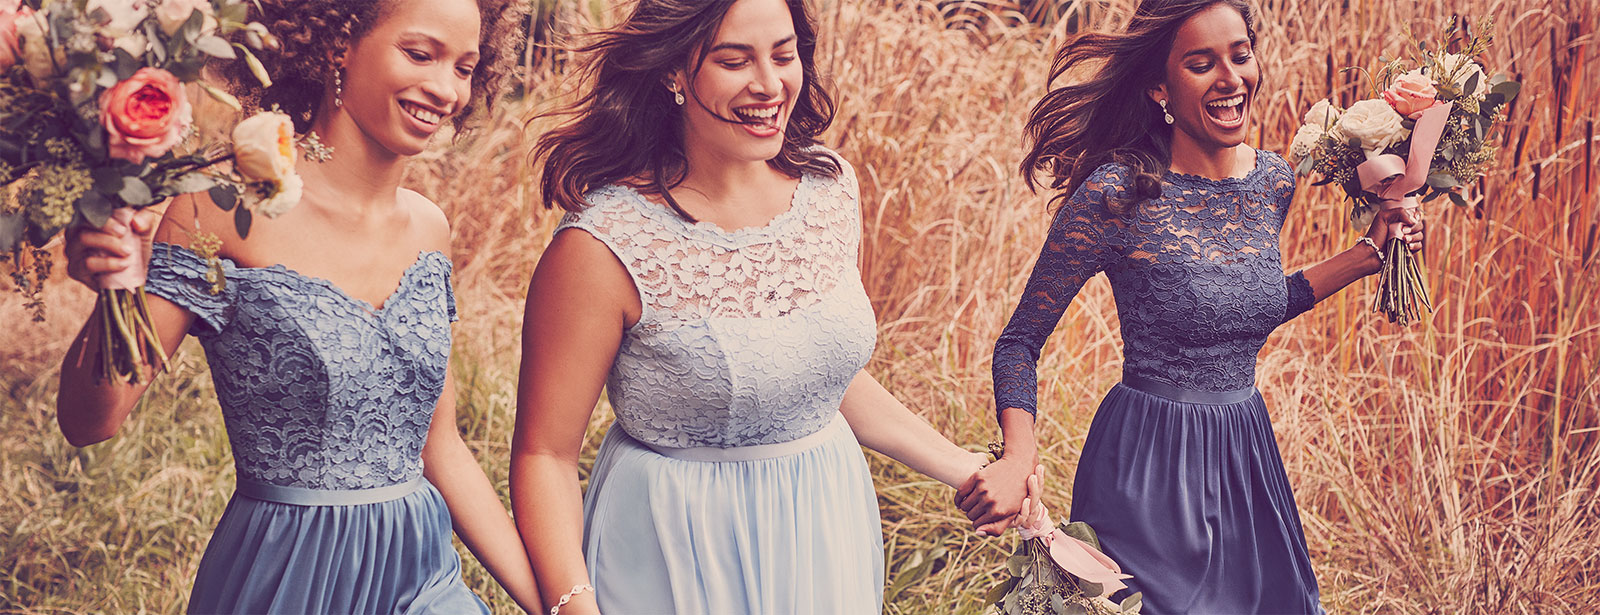 Bridesmaids running through a field holding hands and their bouquets